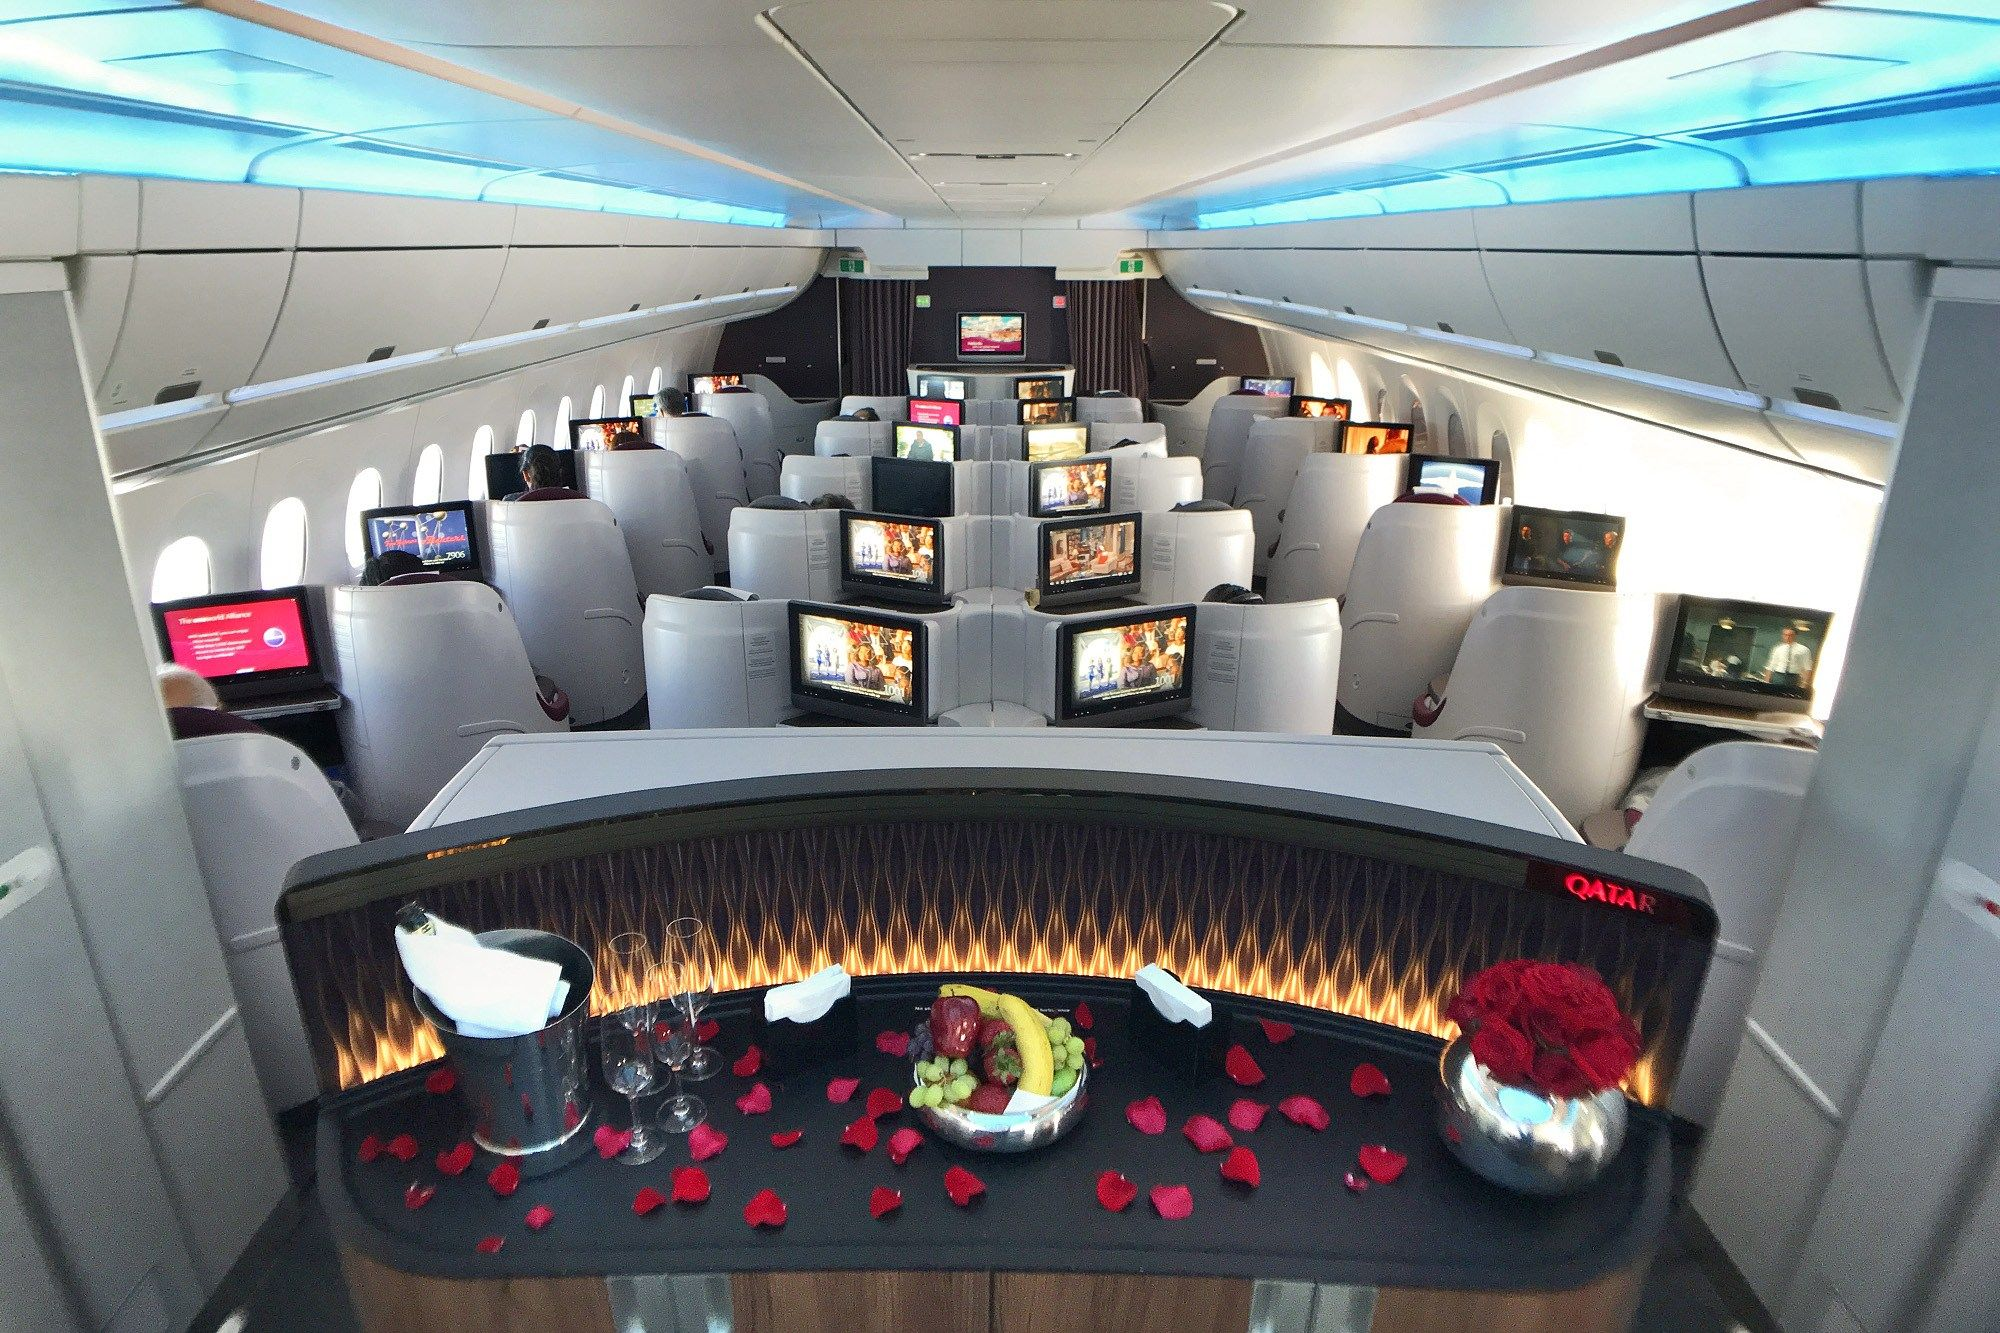 Qatar Airways Business Class Seats Ranked From Best To Worst Business Class Seats Business Class Singapore Airlines